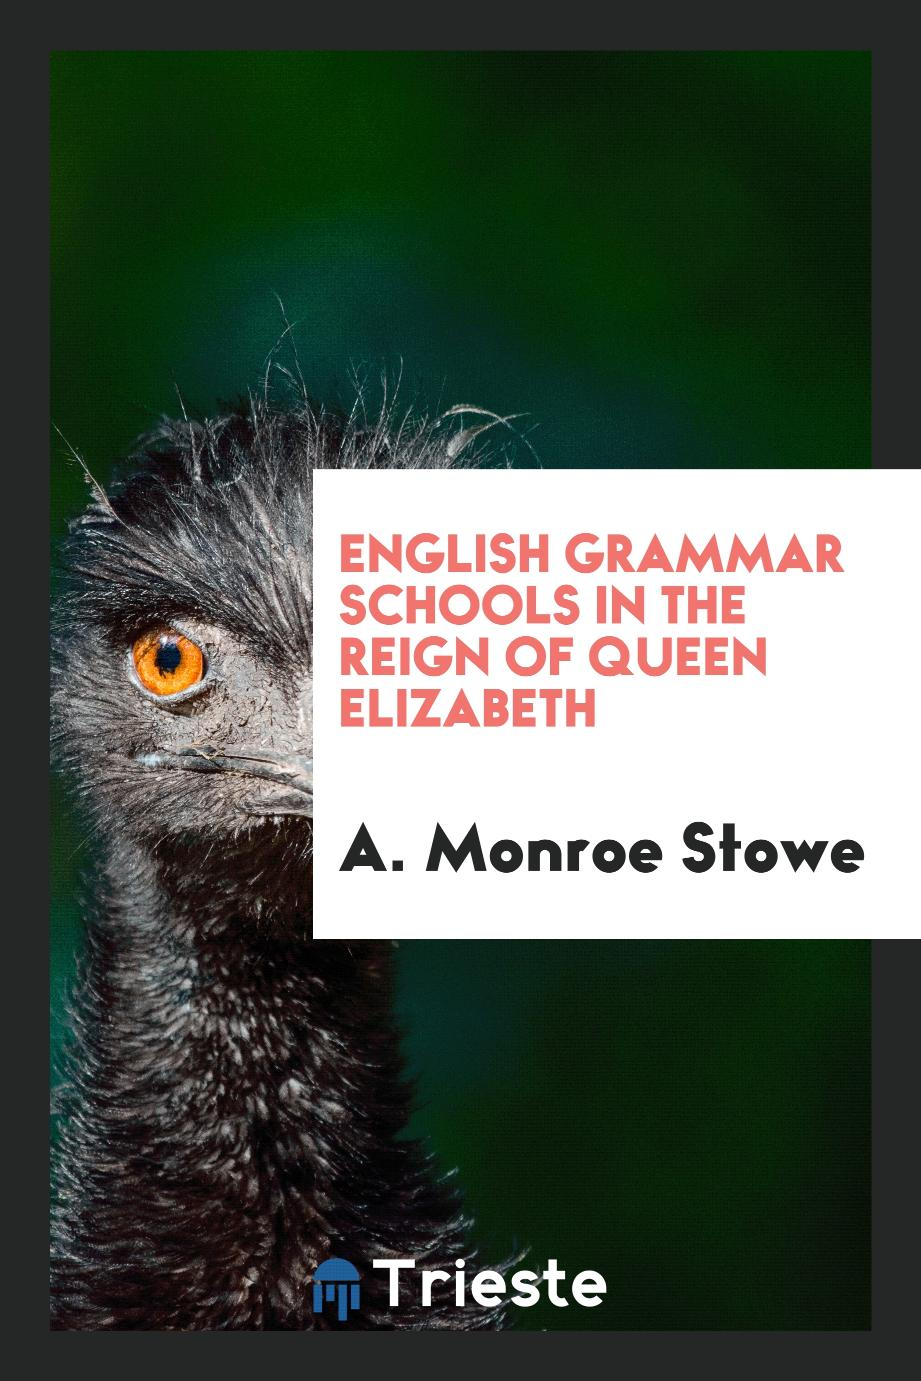 English Grammar Schools in the Reign of Queen Elizabeth